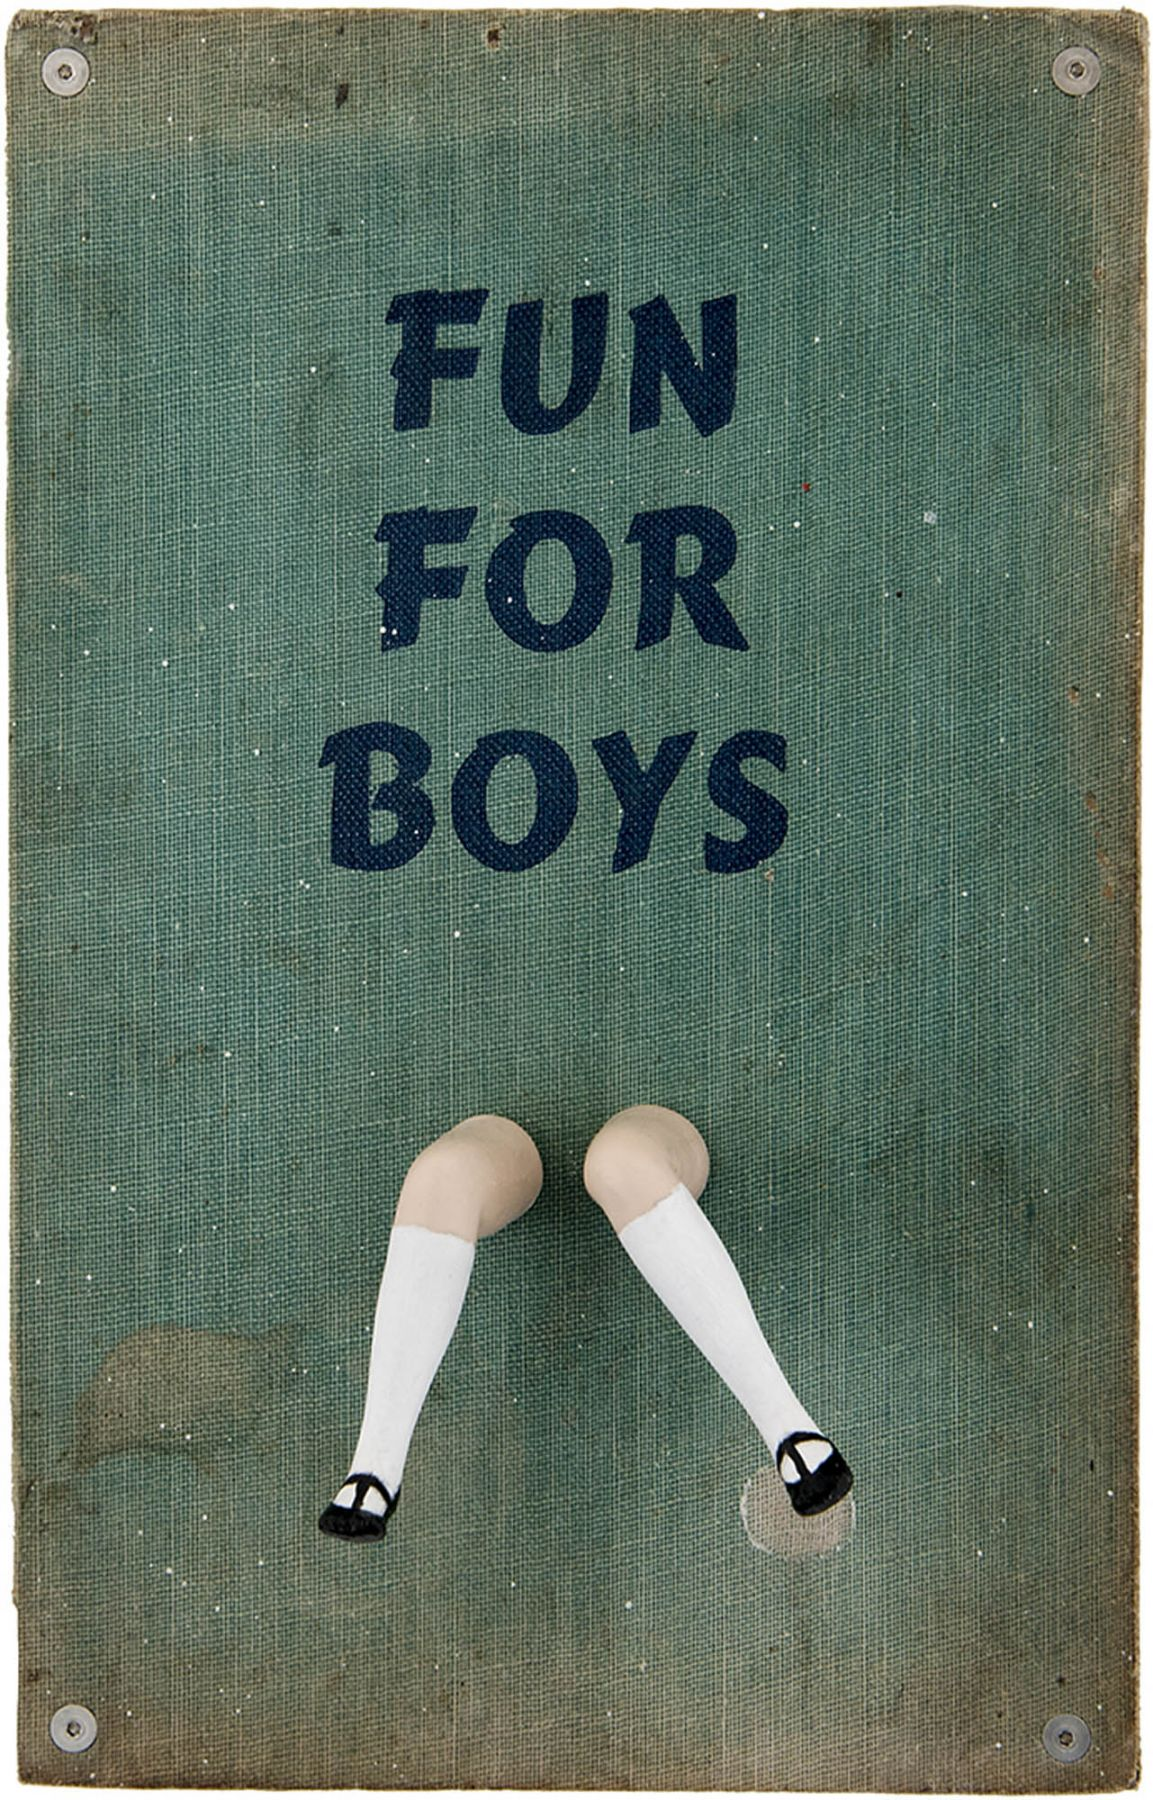 Nancy Gifford, Fun for Boys - #metoo Series, 2017